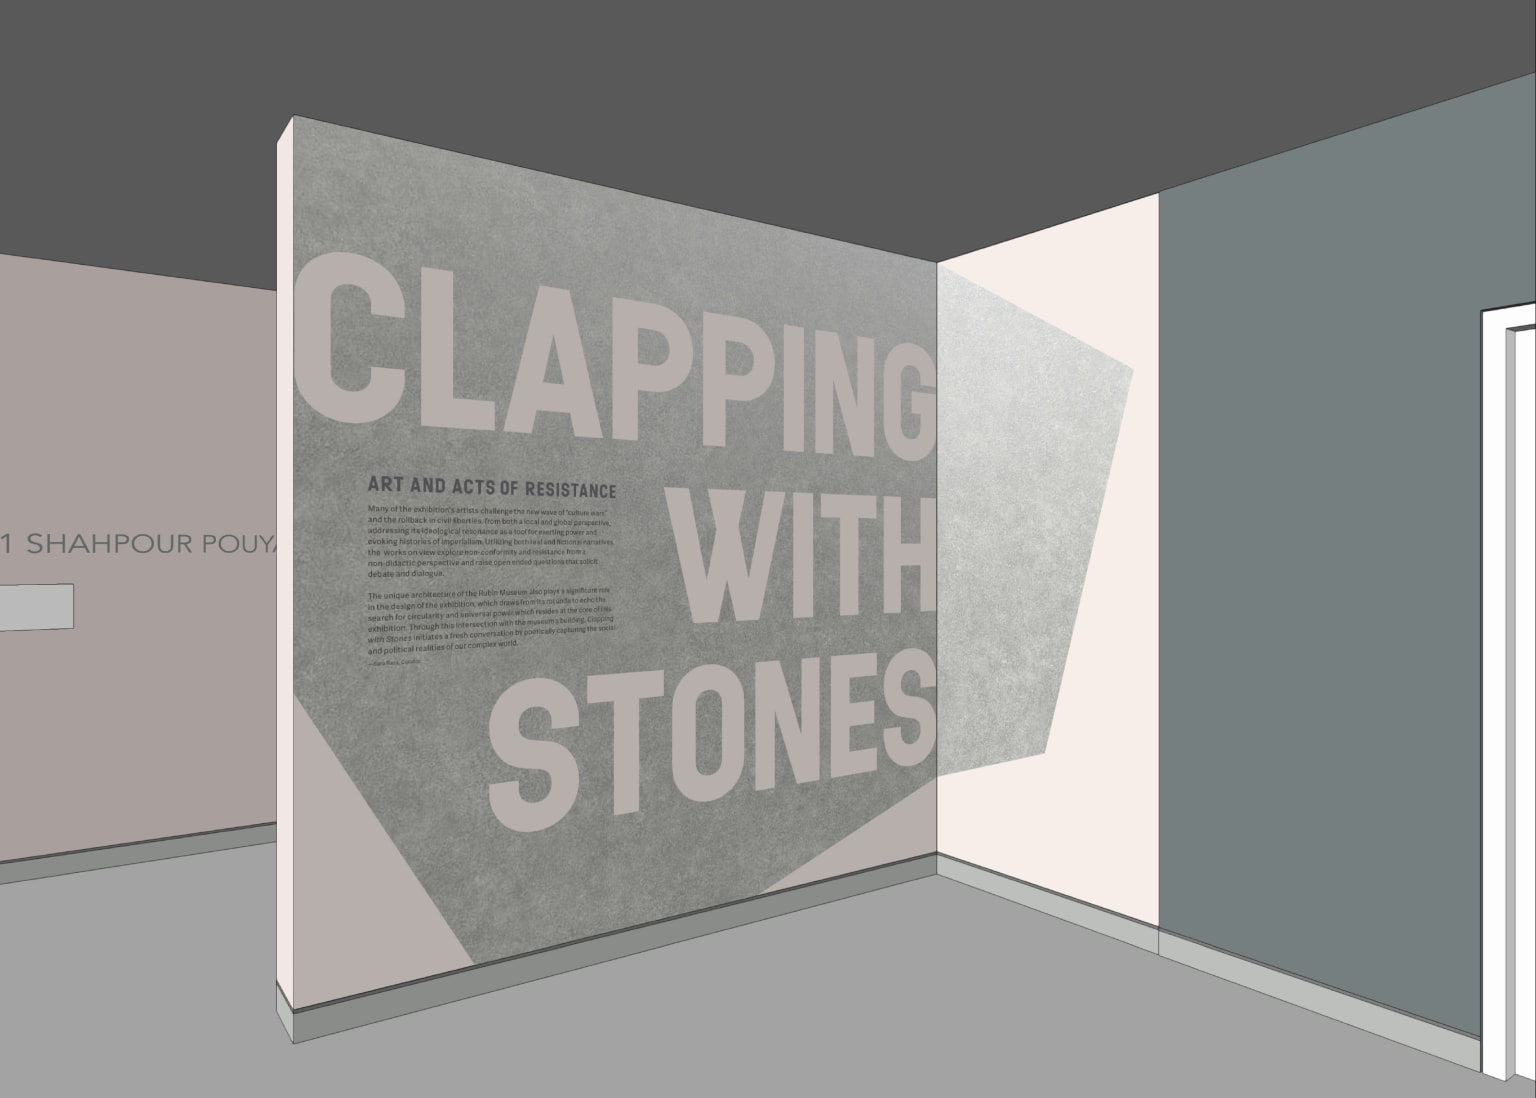 Rubin Museum of Art - Clapping with Stones